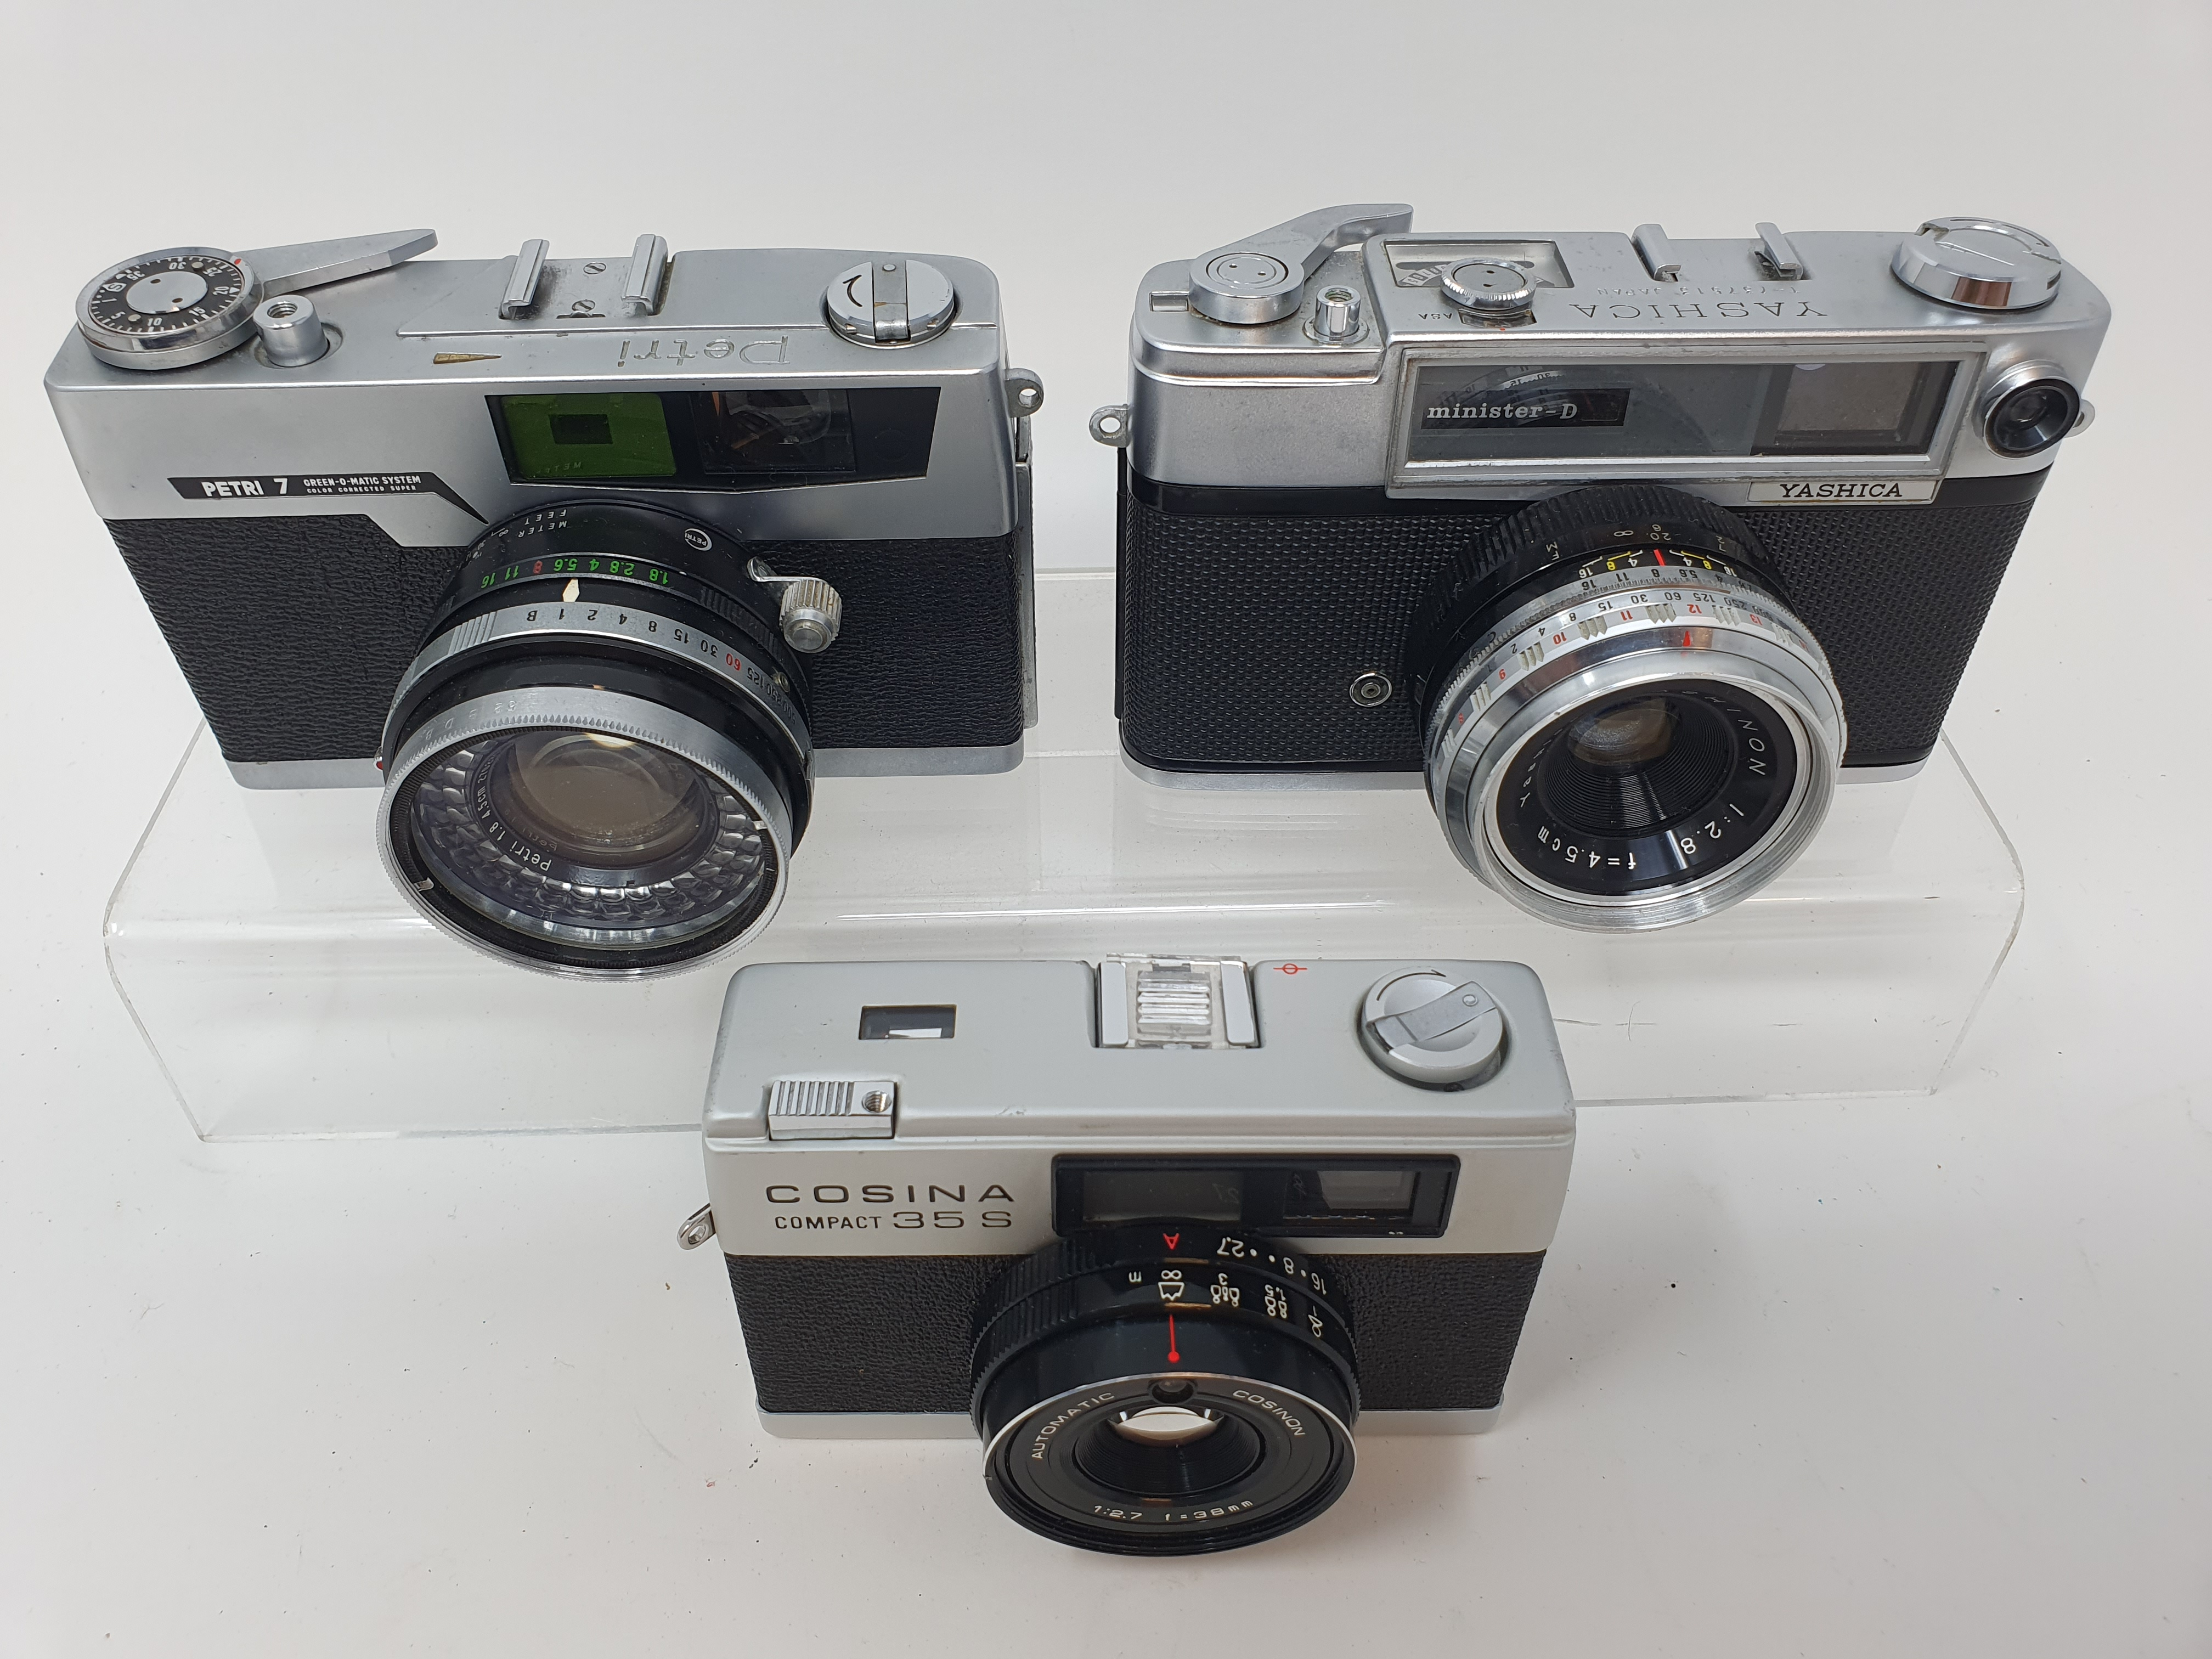 A Cosina compact 35S camera, a Yashica camera, serial number T-737513, and a Pretri 7 camera (3) - Image 2 of 2